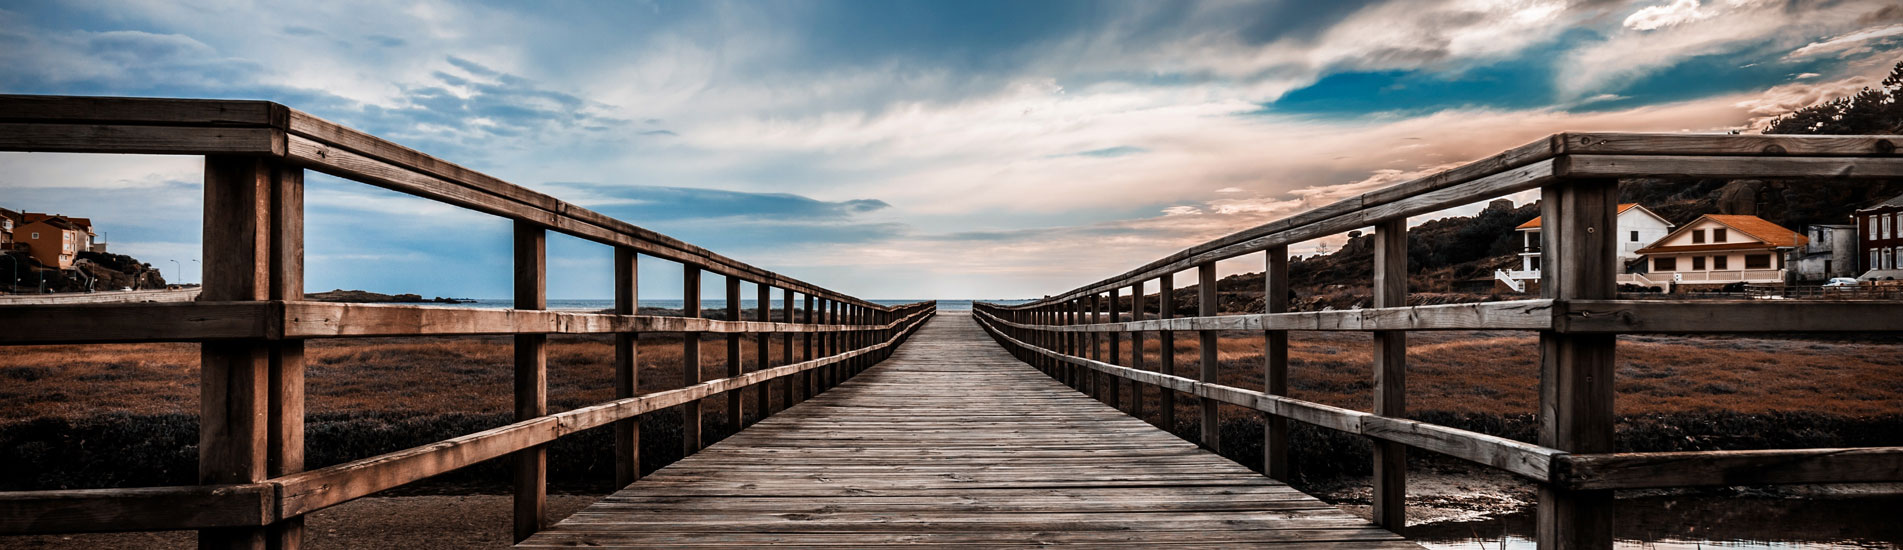 Boardwalk at a beach at sunset